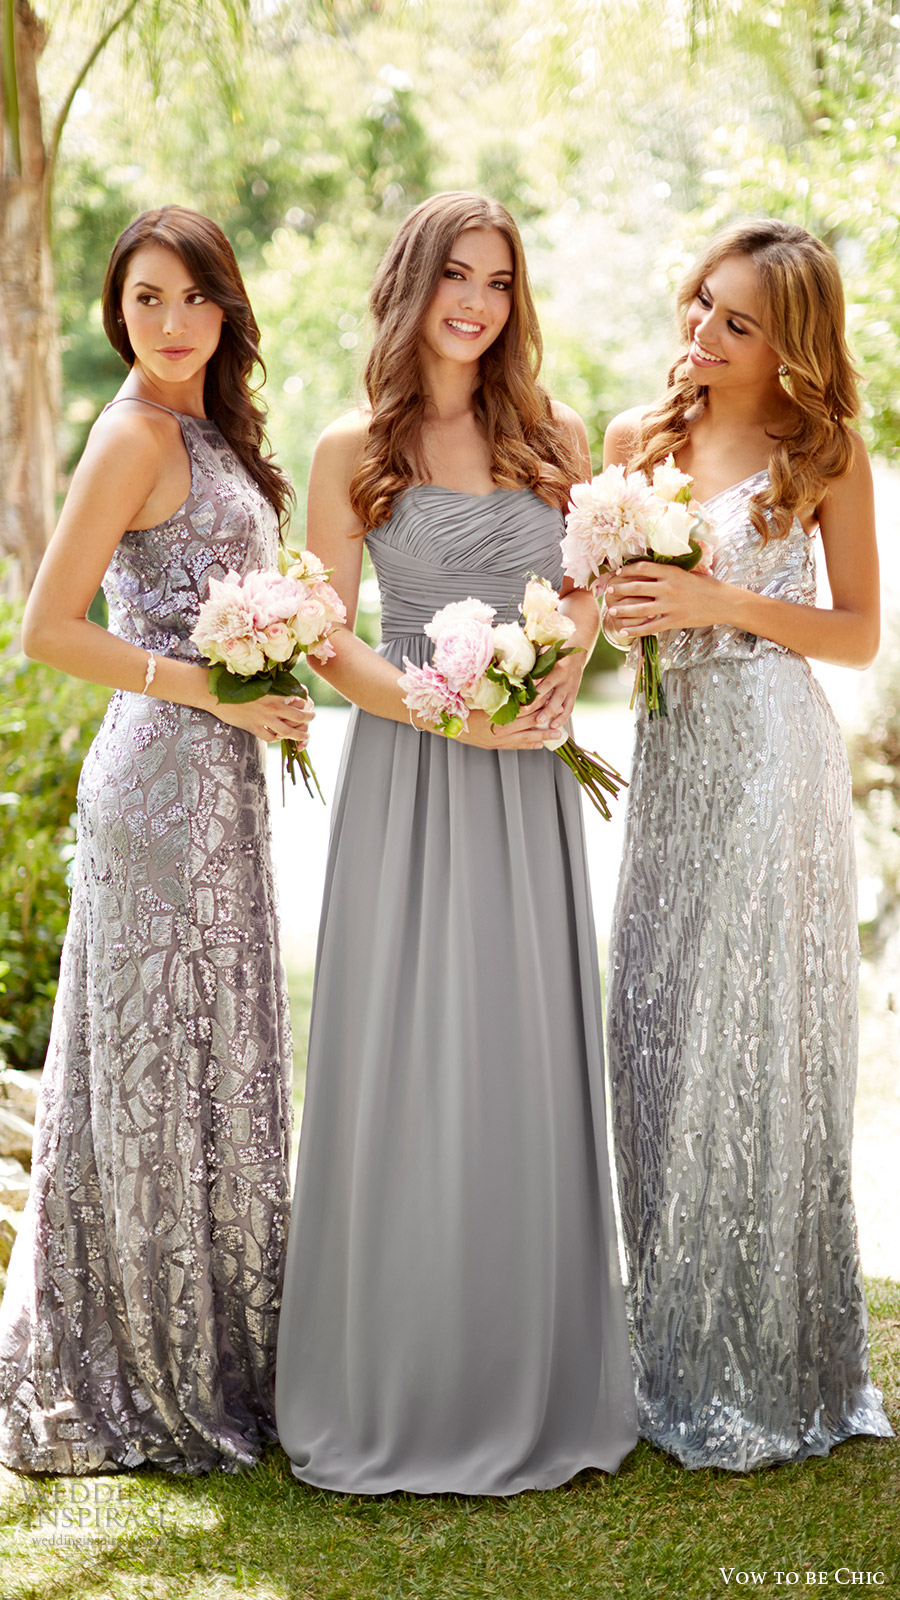 Bridesmaid trend report 2016 featuring vow to be chic designer vow to be chic 2016 metallics silver grey gray bridesmaids bridal party bridesmaid dresses for rent ombrellifo Image collections